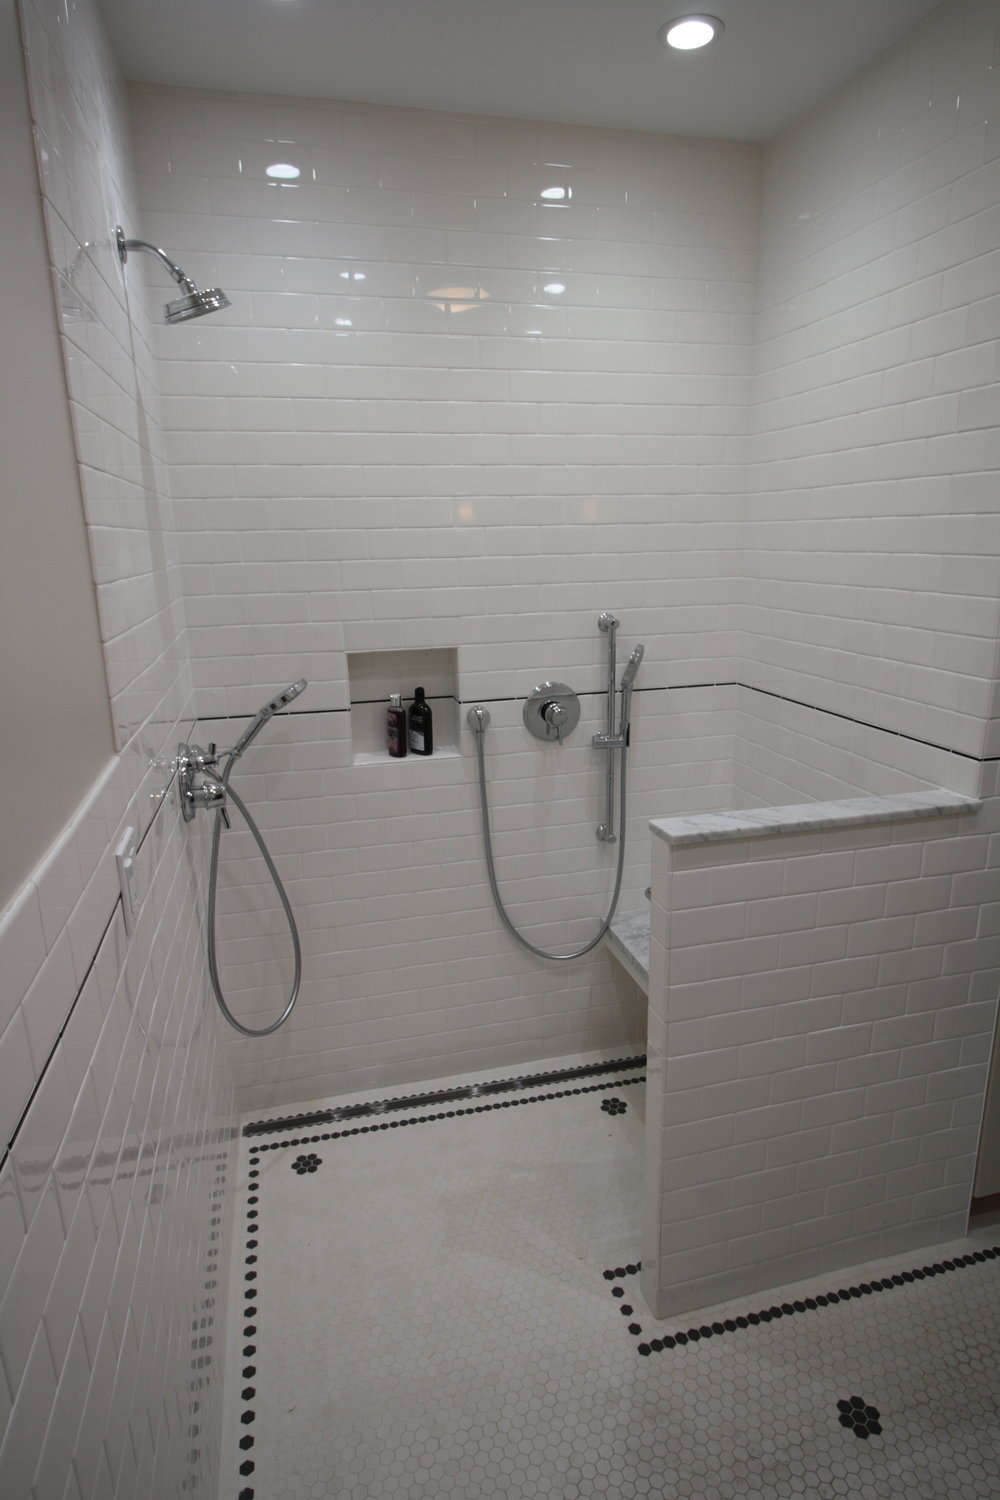 Reinventing a Shower - A shower that works standing or seated (prior to glass installation). Individual controls allow for direct use no matter where the bather prefers to shower.